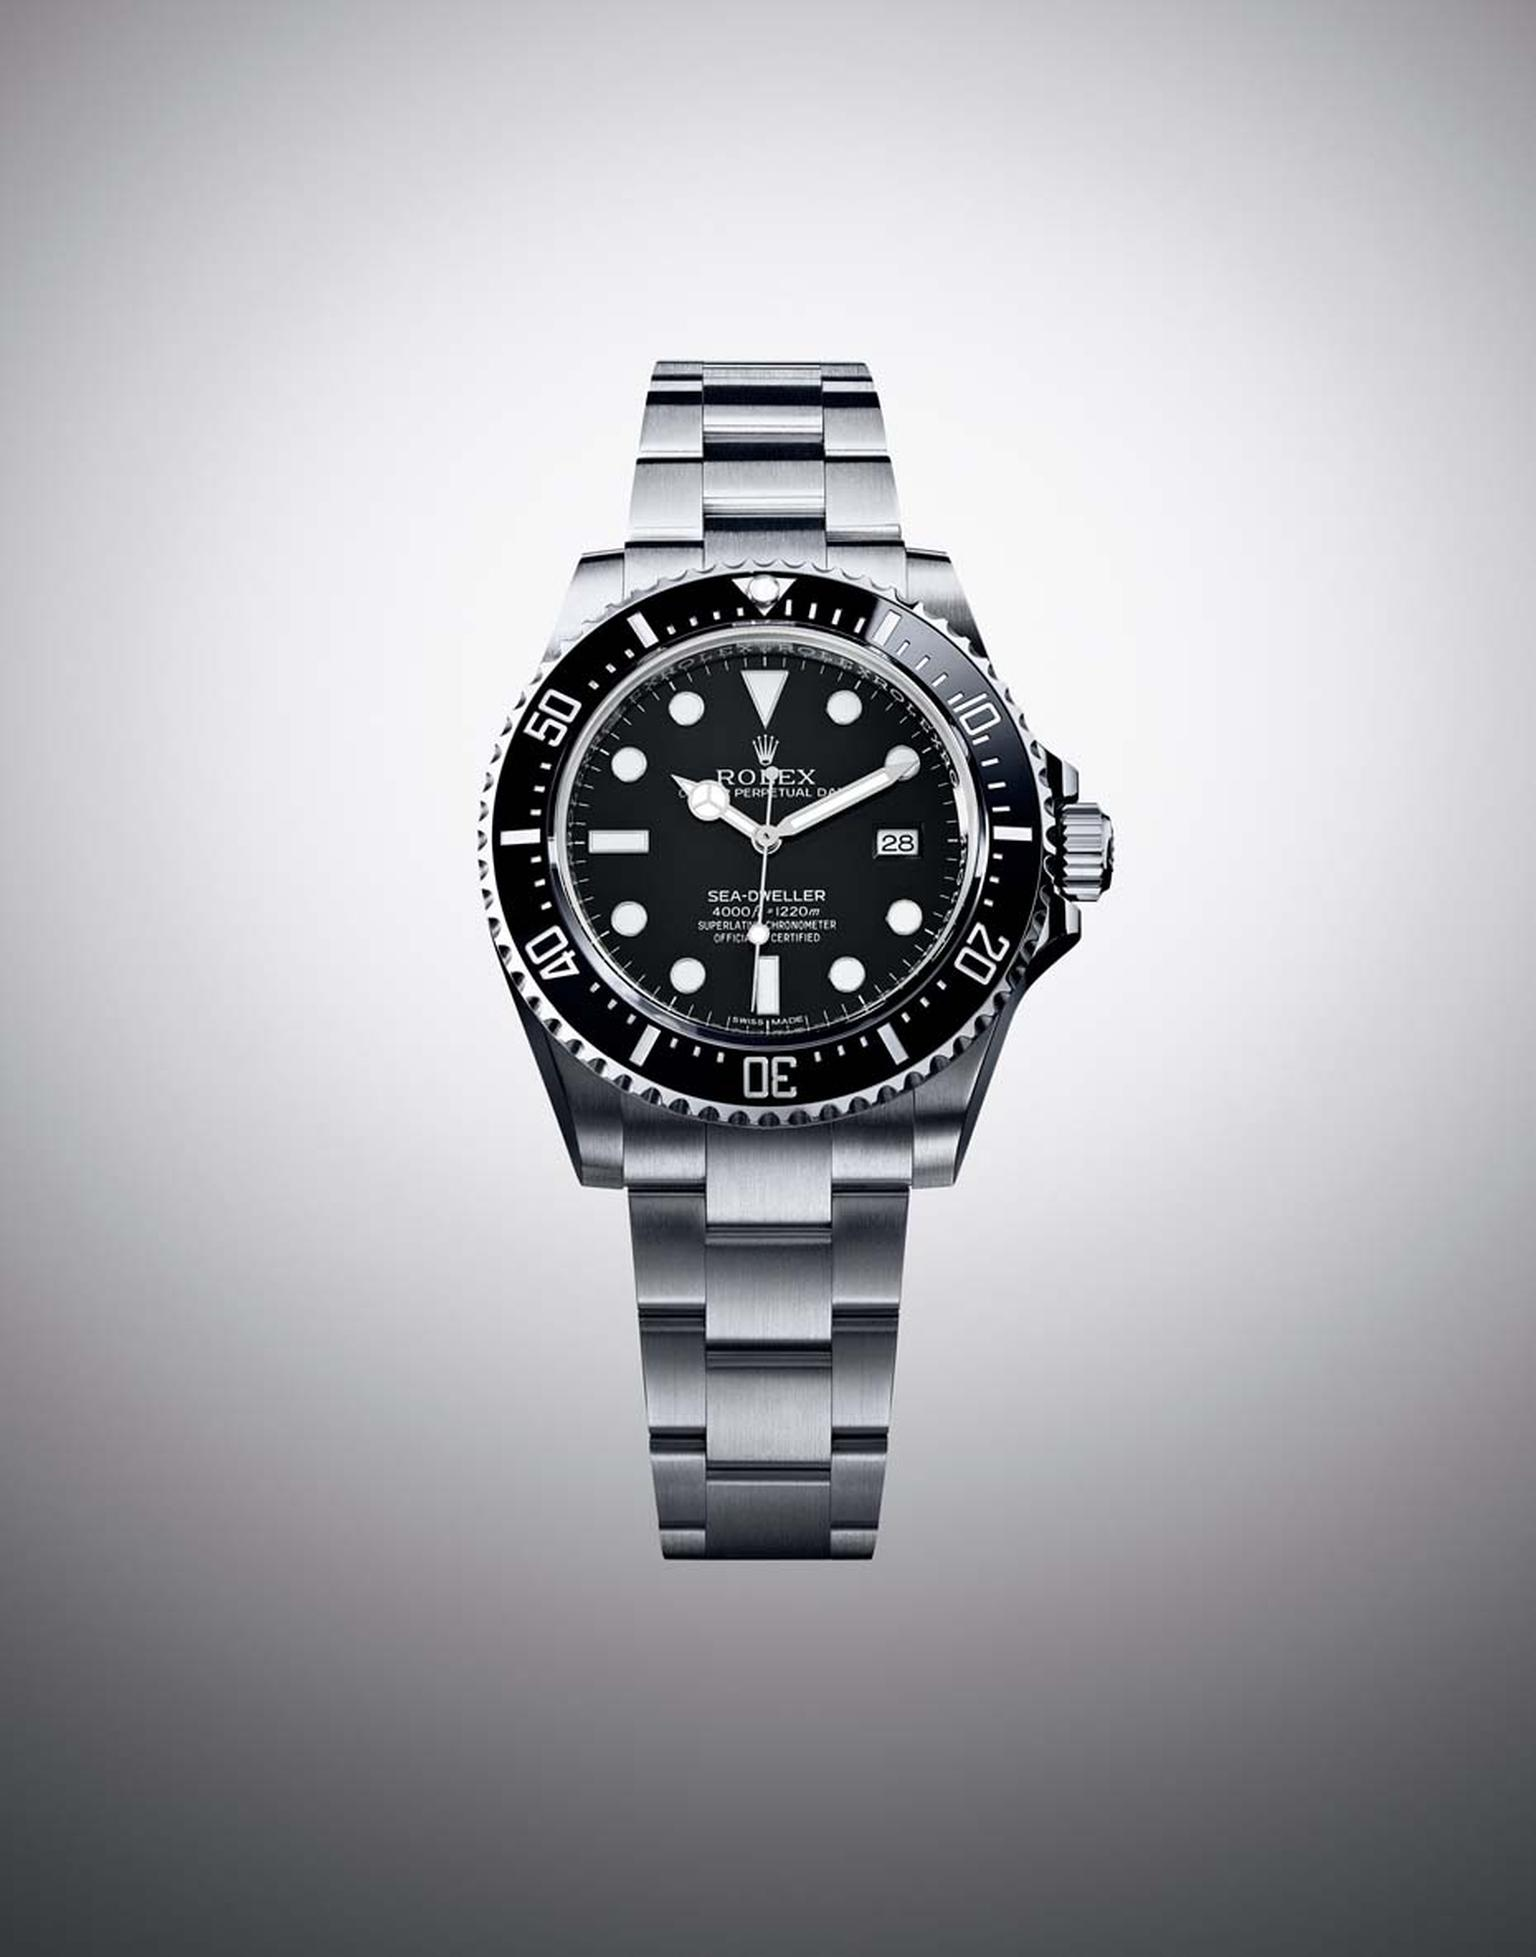 The Rolex Oyster Perpetual Sea-Dweller 4000 watch is a contemporary version of the legendary 1967 Sea-Dweller. This 40mm professional diver's watch can fathom depths of 1,200m. Fitted with Rolex calibre 3135, the self-winding mechanical movement is, like